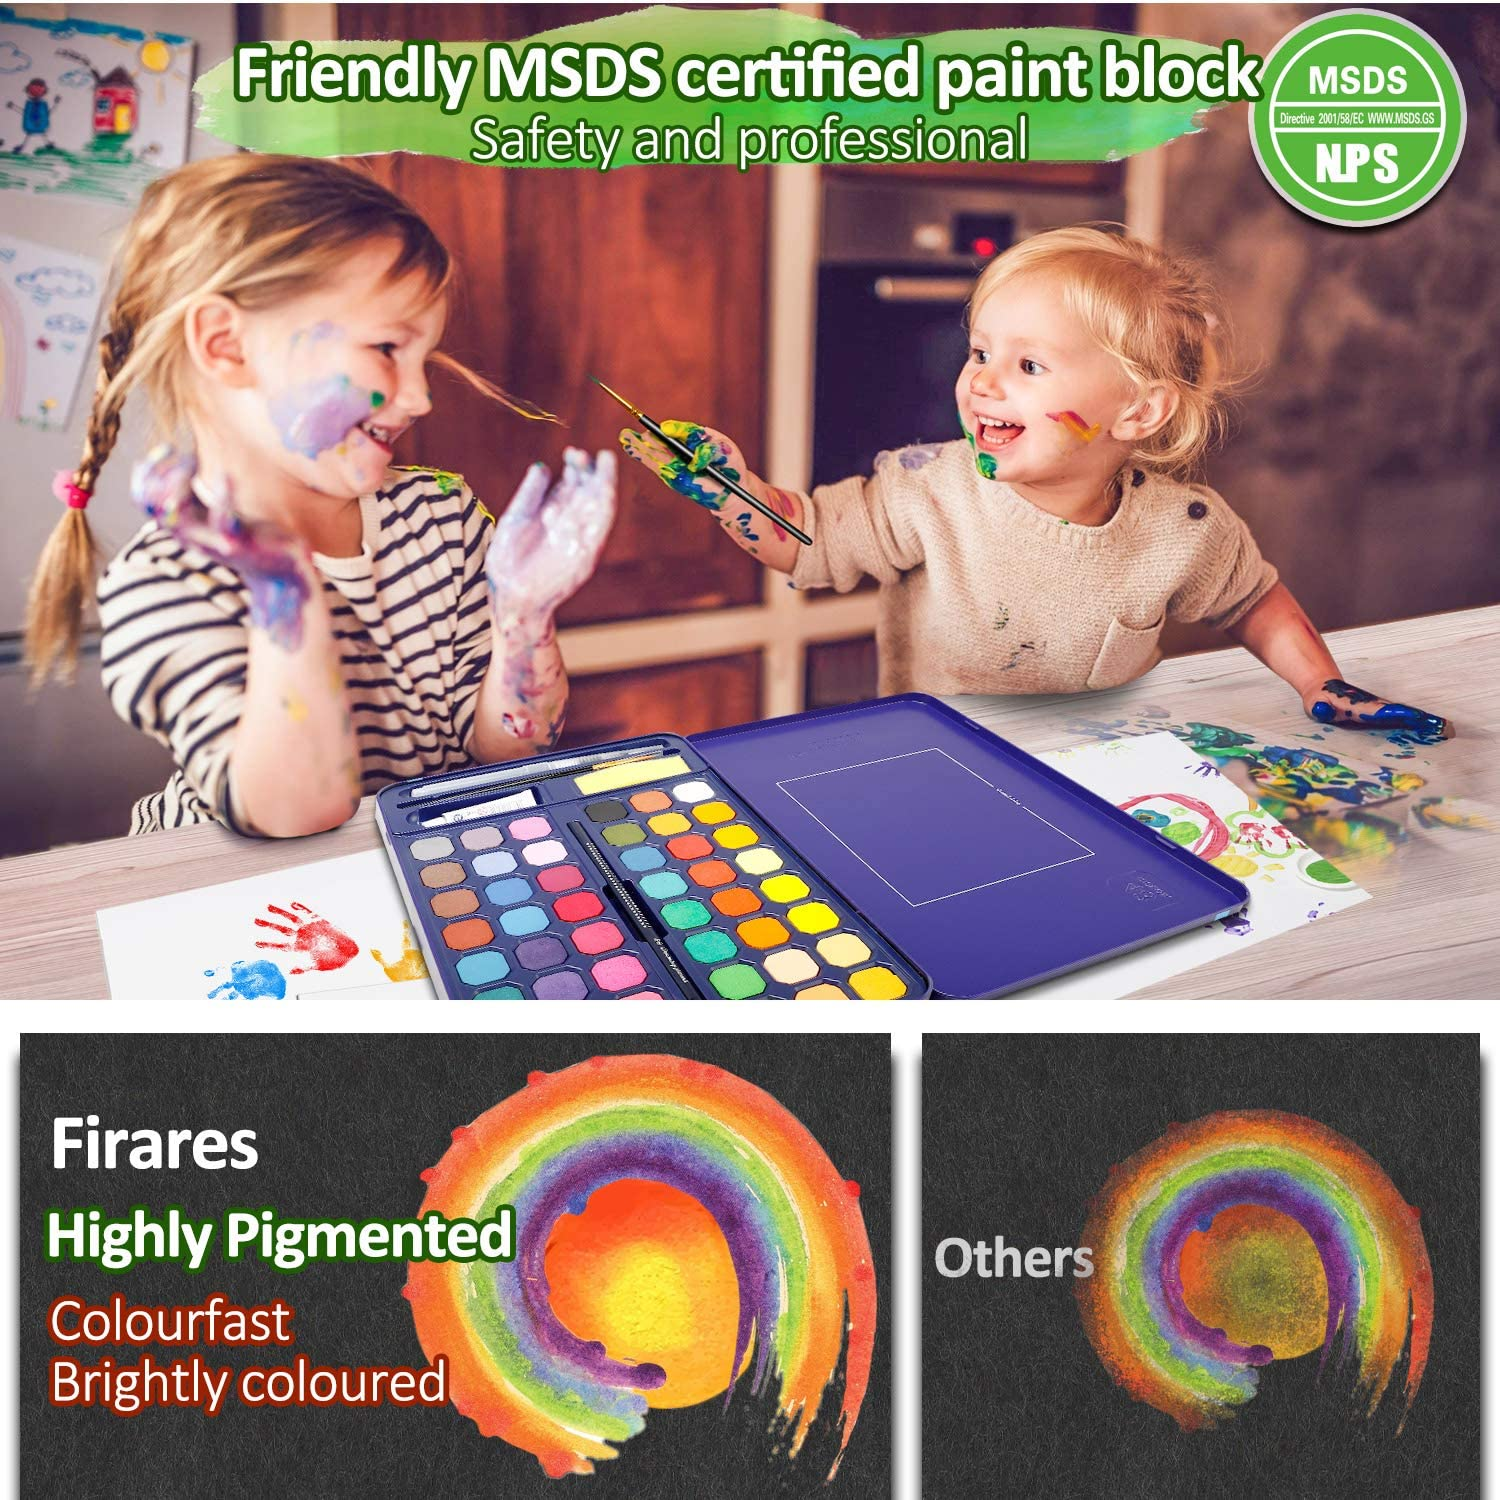 Children Firares Travel Highly Pigment 48 Vibrant Colors Watercolor Paint Set Drawing Pencil Painting Paper for Beginners Watercolor Brush Hobbyists and Students